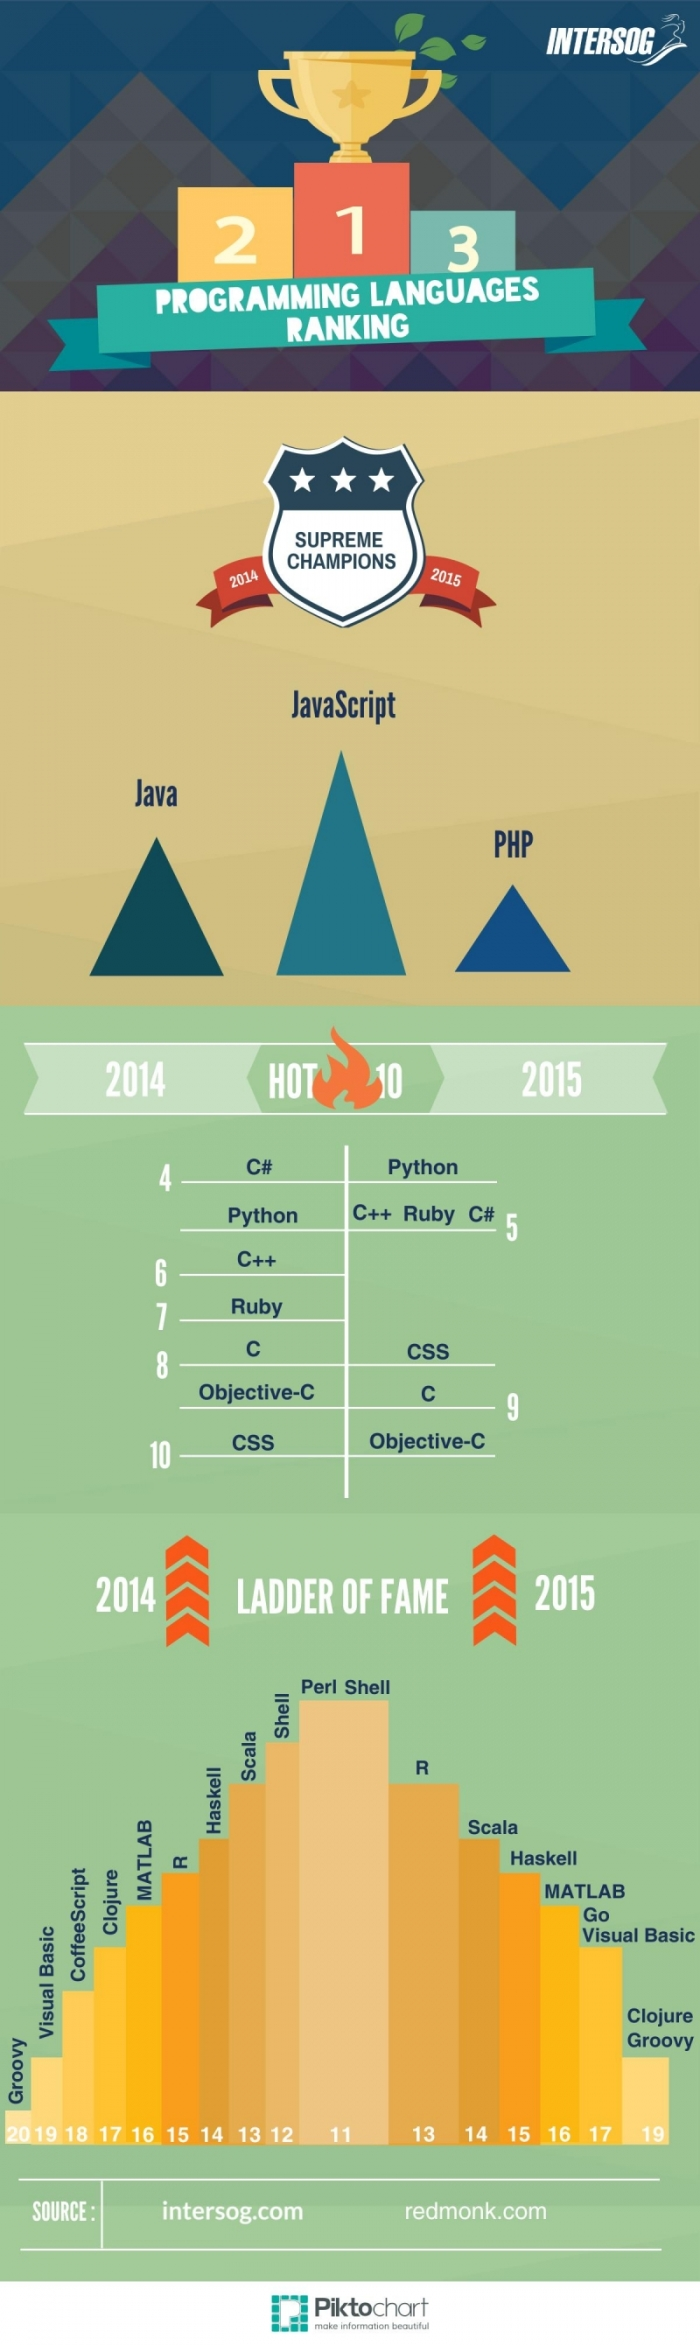 programming languages tanking, popular programming languages